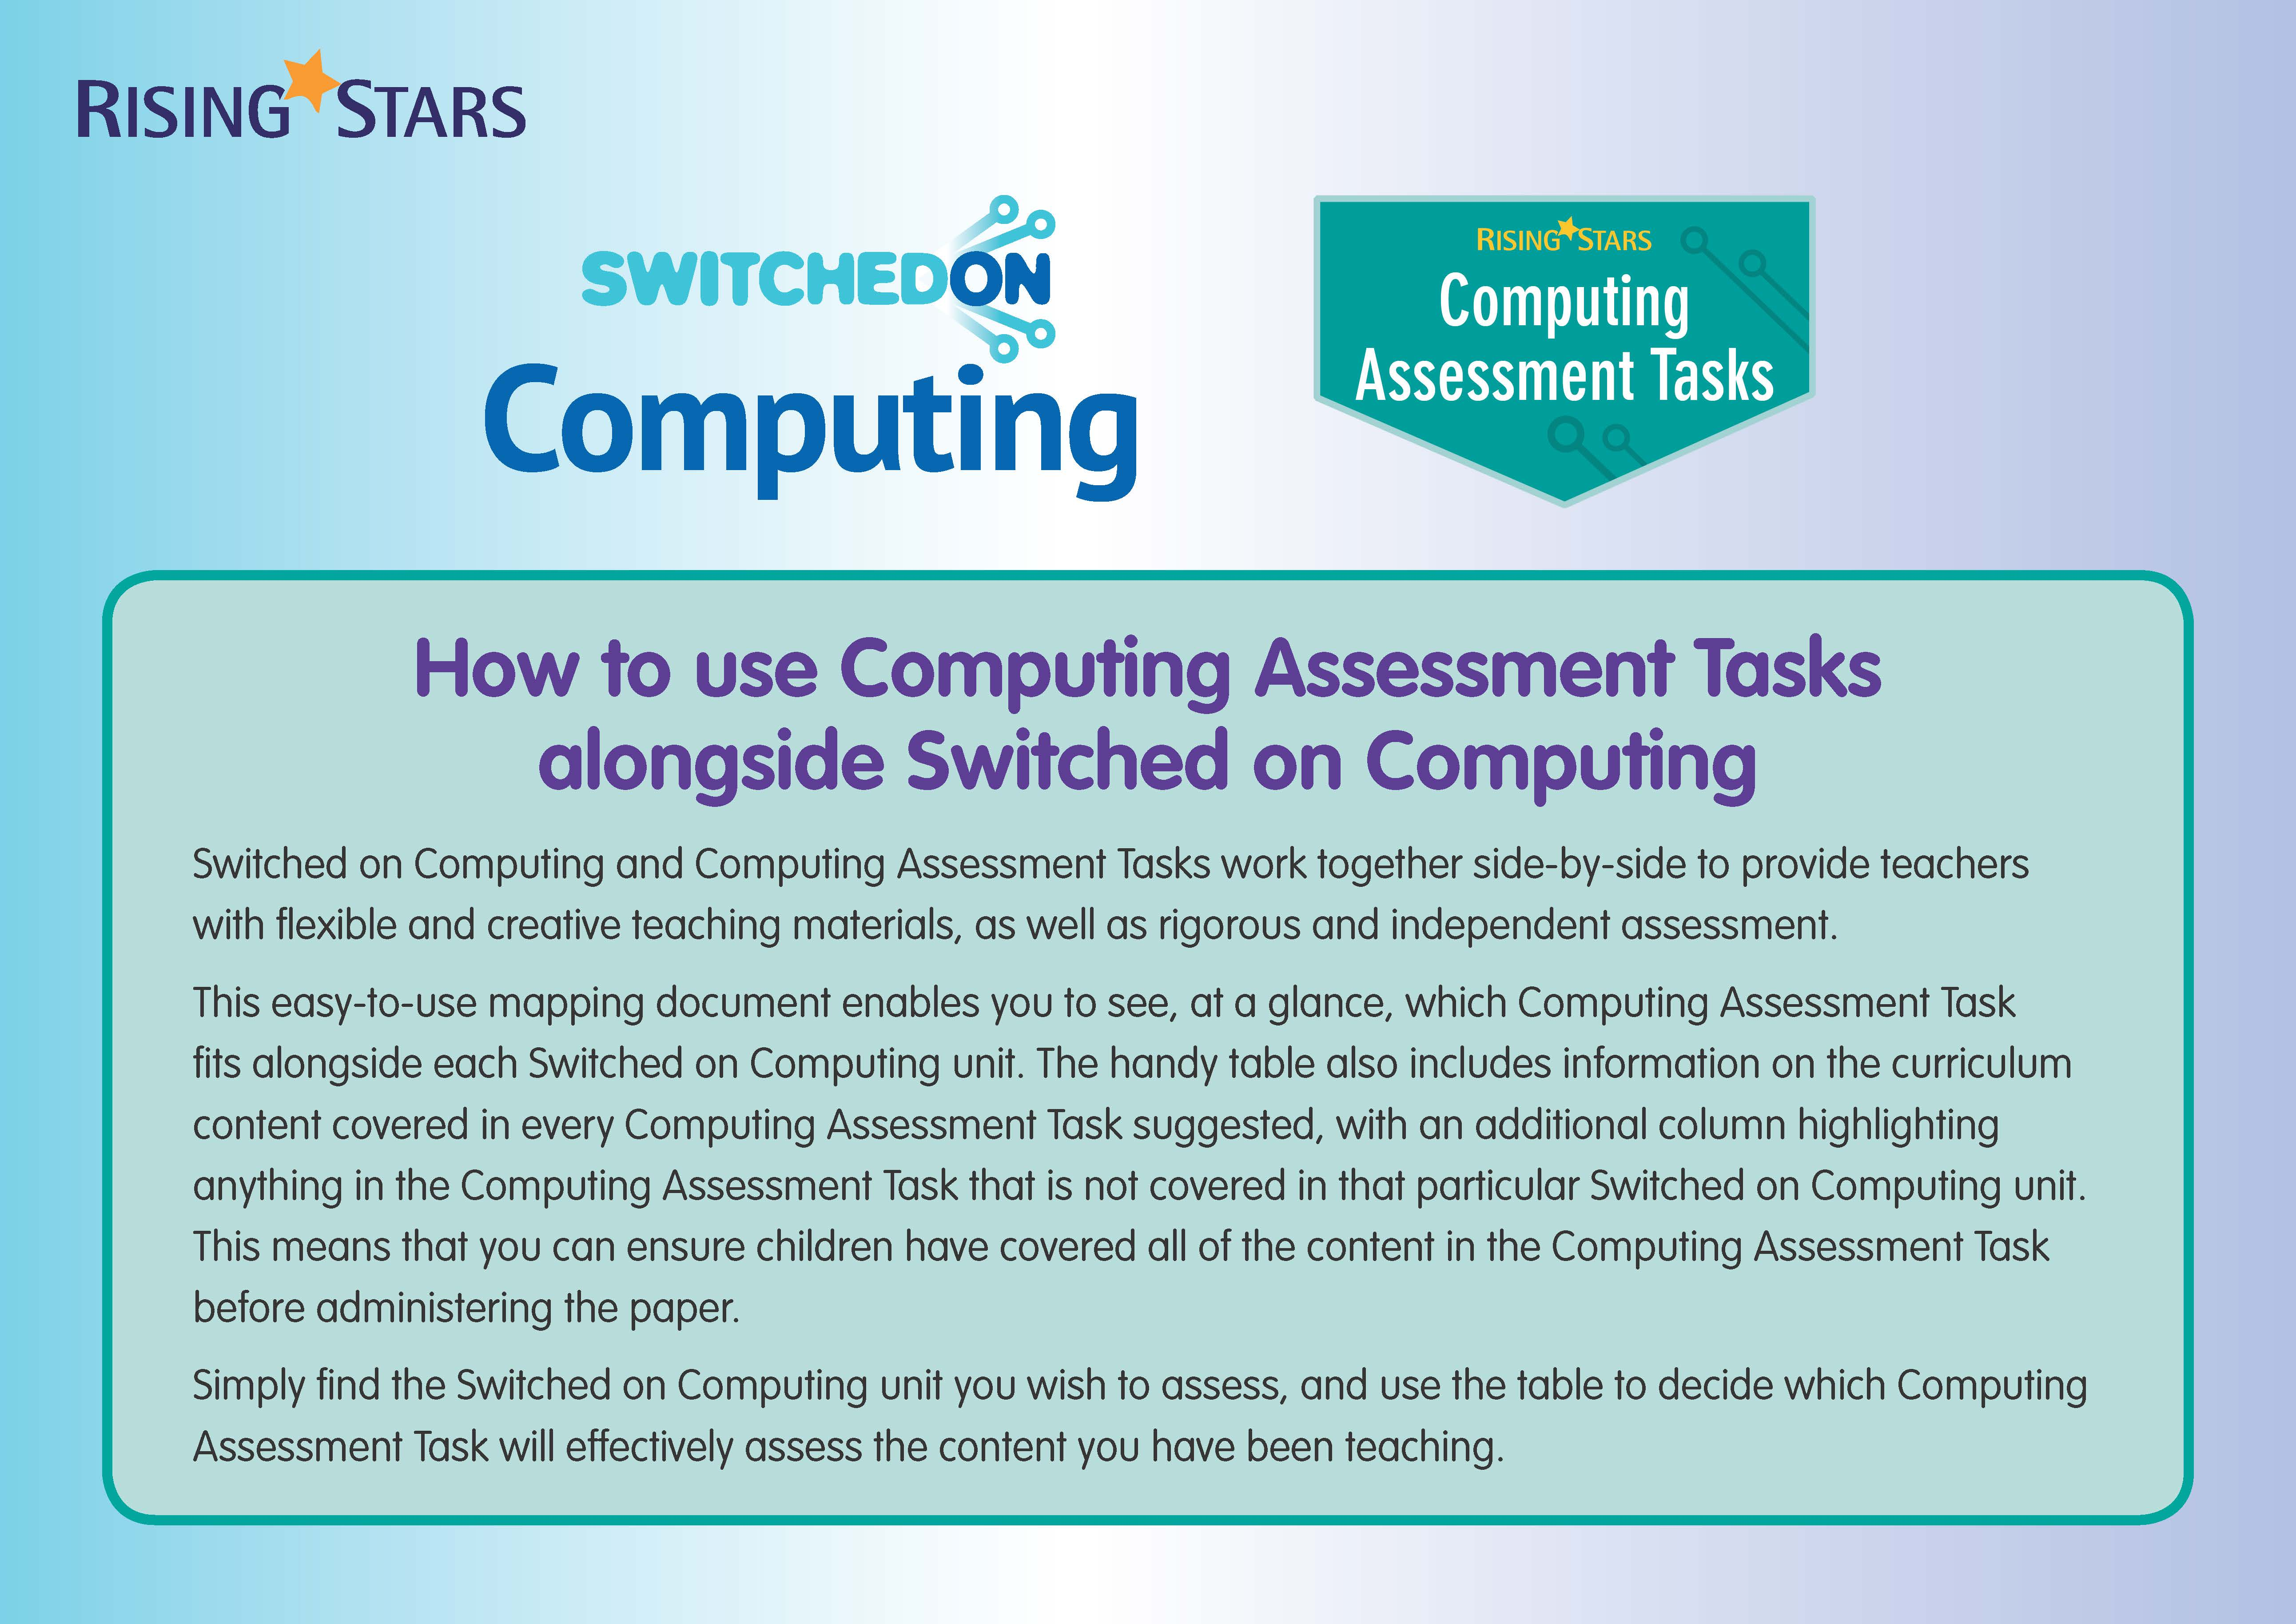 Using Switched on Computing alongside Computing Assessment Tasks